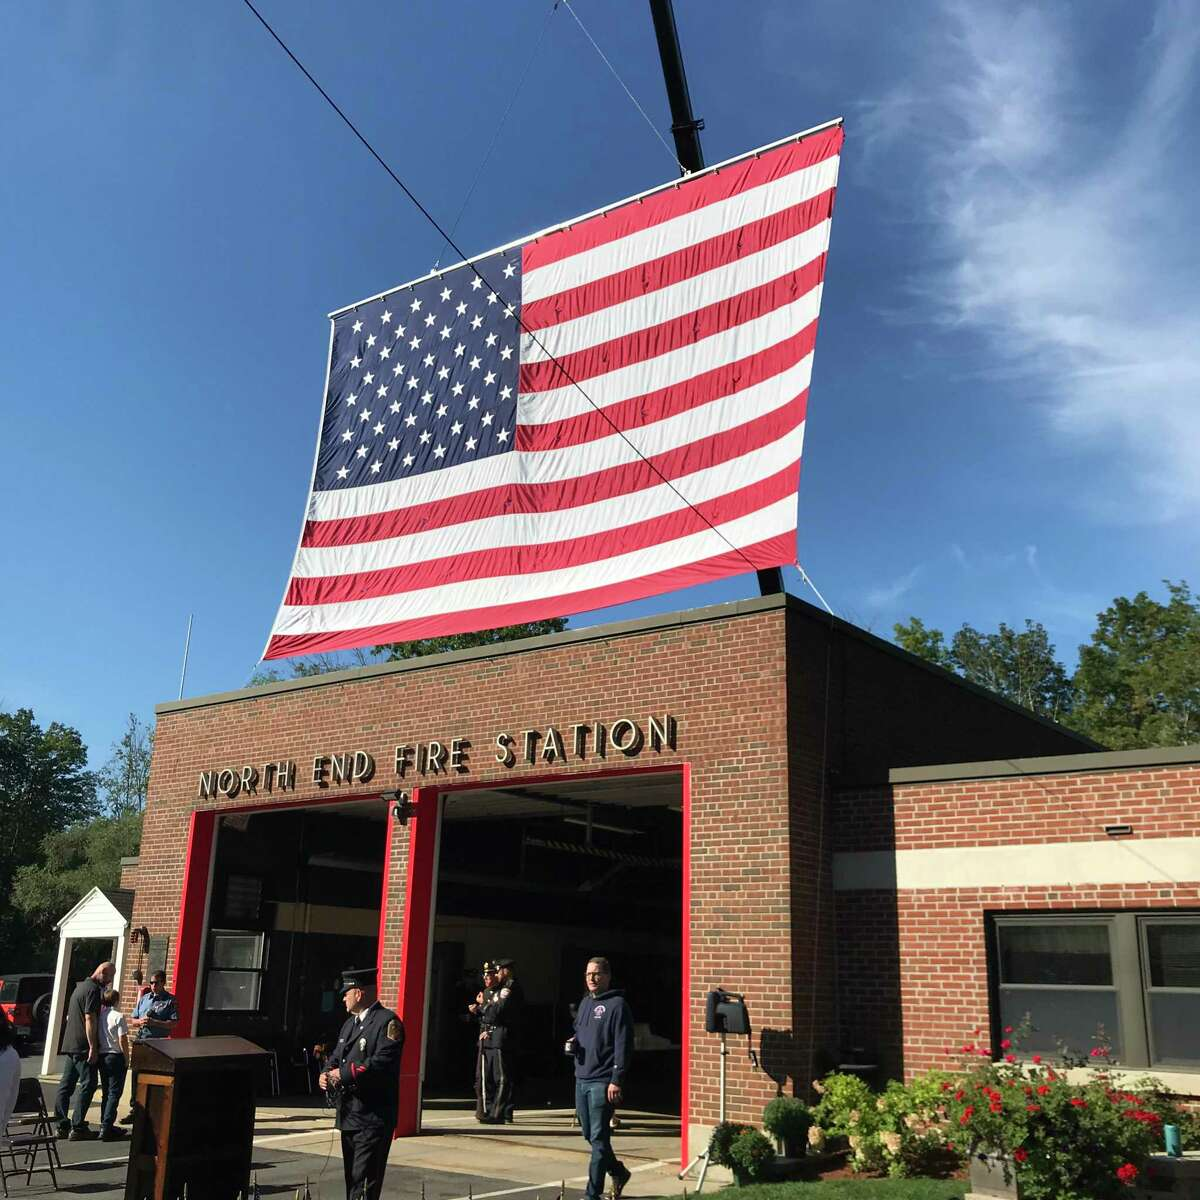 A ceremony was neld Saturday at Torrington's North End Fire Station honoring victims of 9/11.